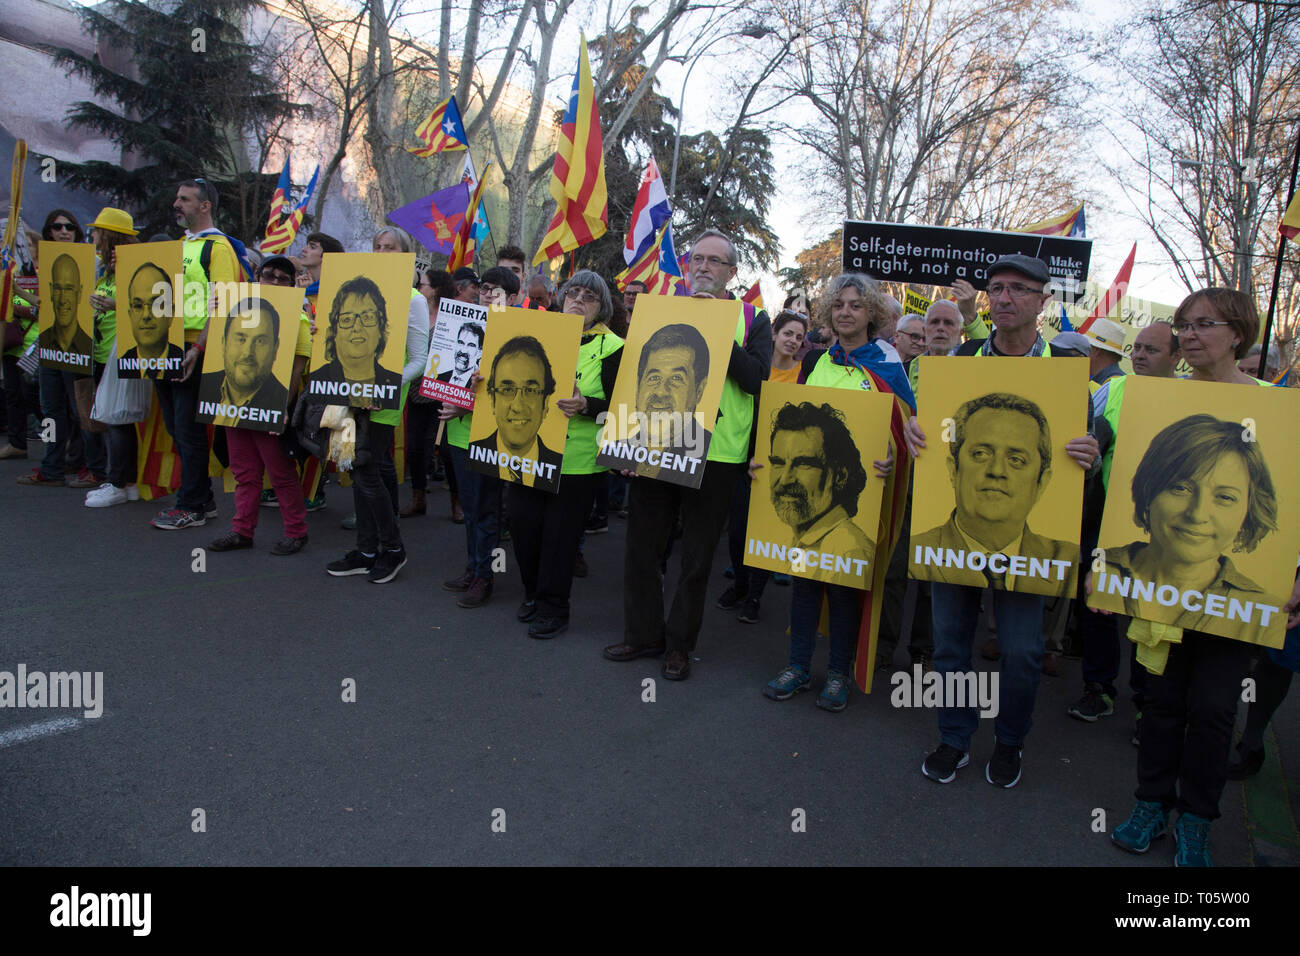 Madrid, Spain. 16th March 2019. Protesters seen carrying photos of the judicial processors by the referendum of 2017 during the demonstration. Hundreds of Catalans protest in Madrid for independence, for self-determination and for the freedom of the political prisoners. Credit: SOPA Images Limited/Alamy Live News Stock Photo